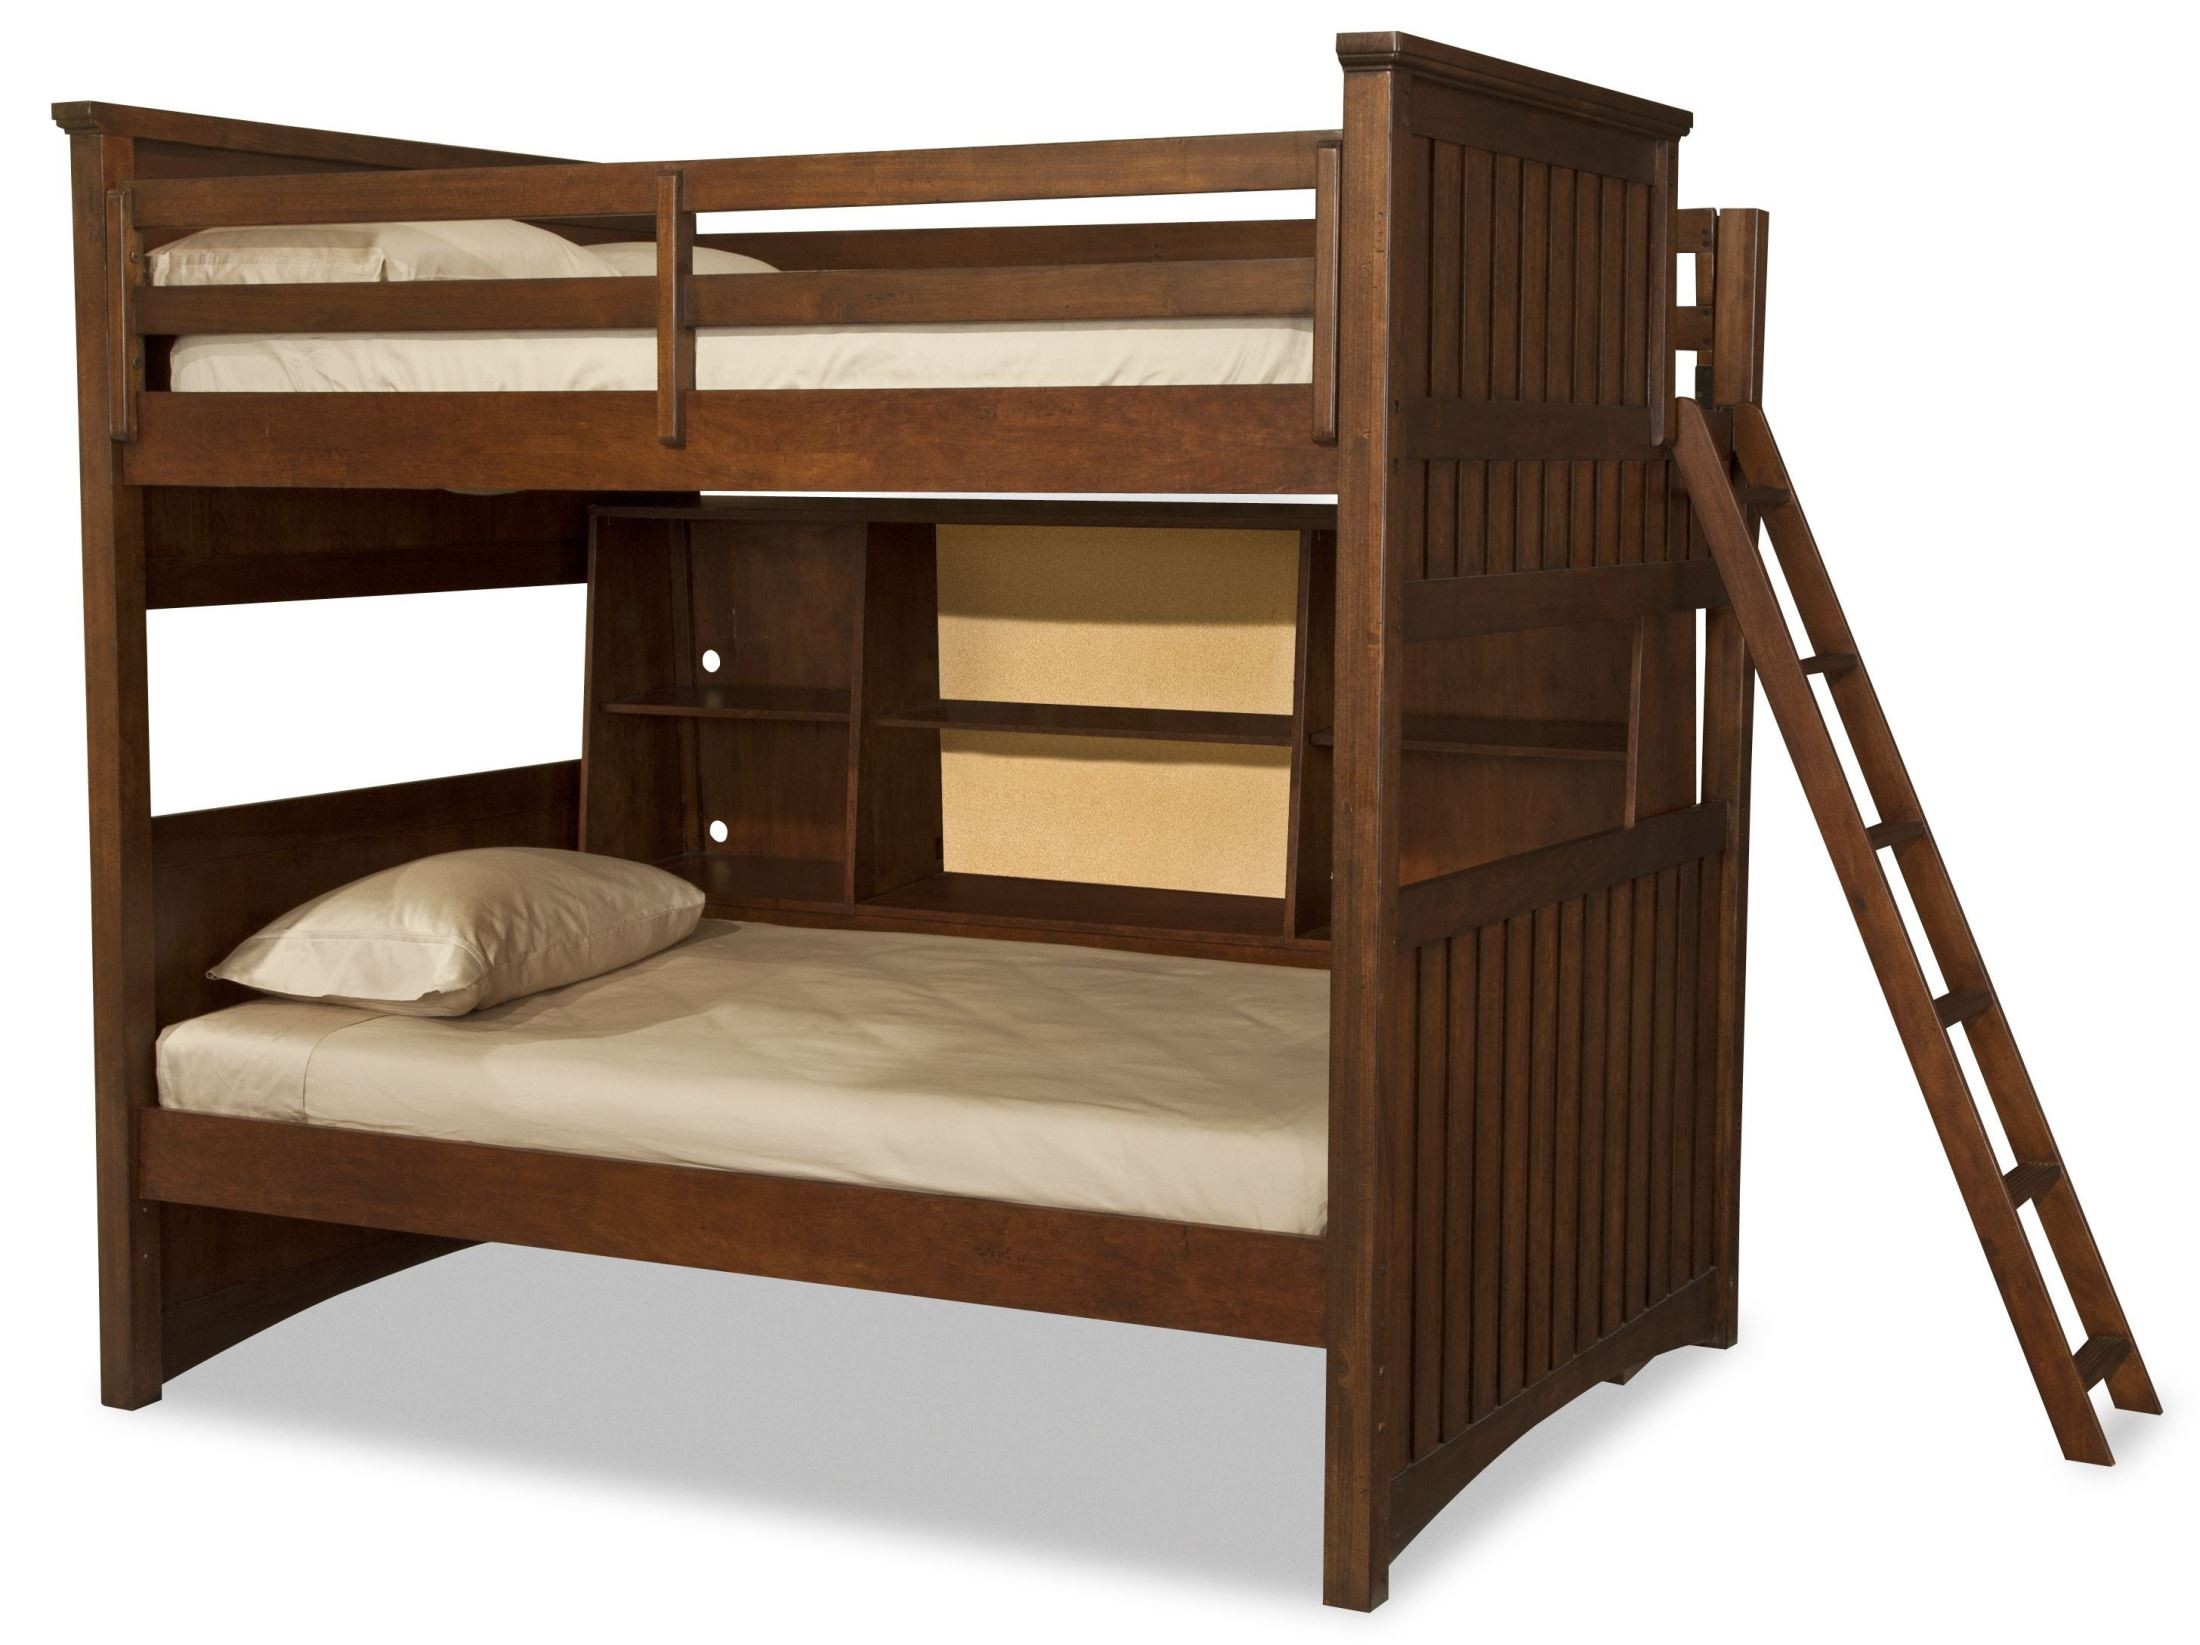 Dawsons Ridge Twin Over Twin Bunk Bed With Bedside Storage From Legacy Kids 2960 8507k